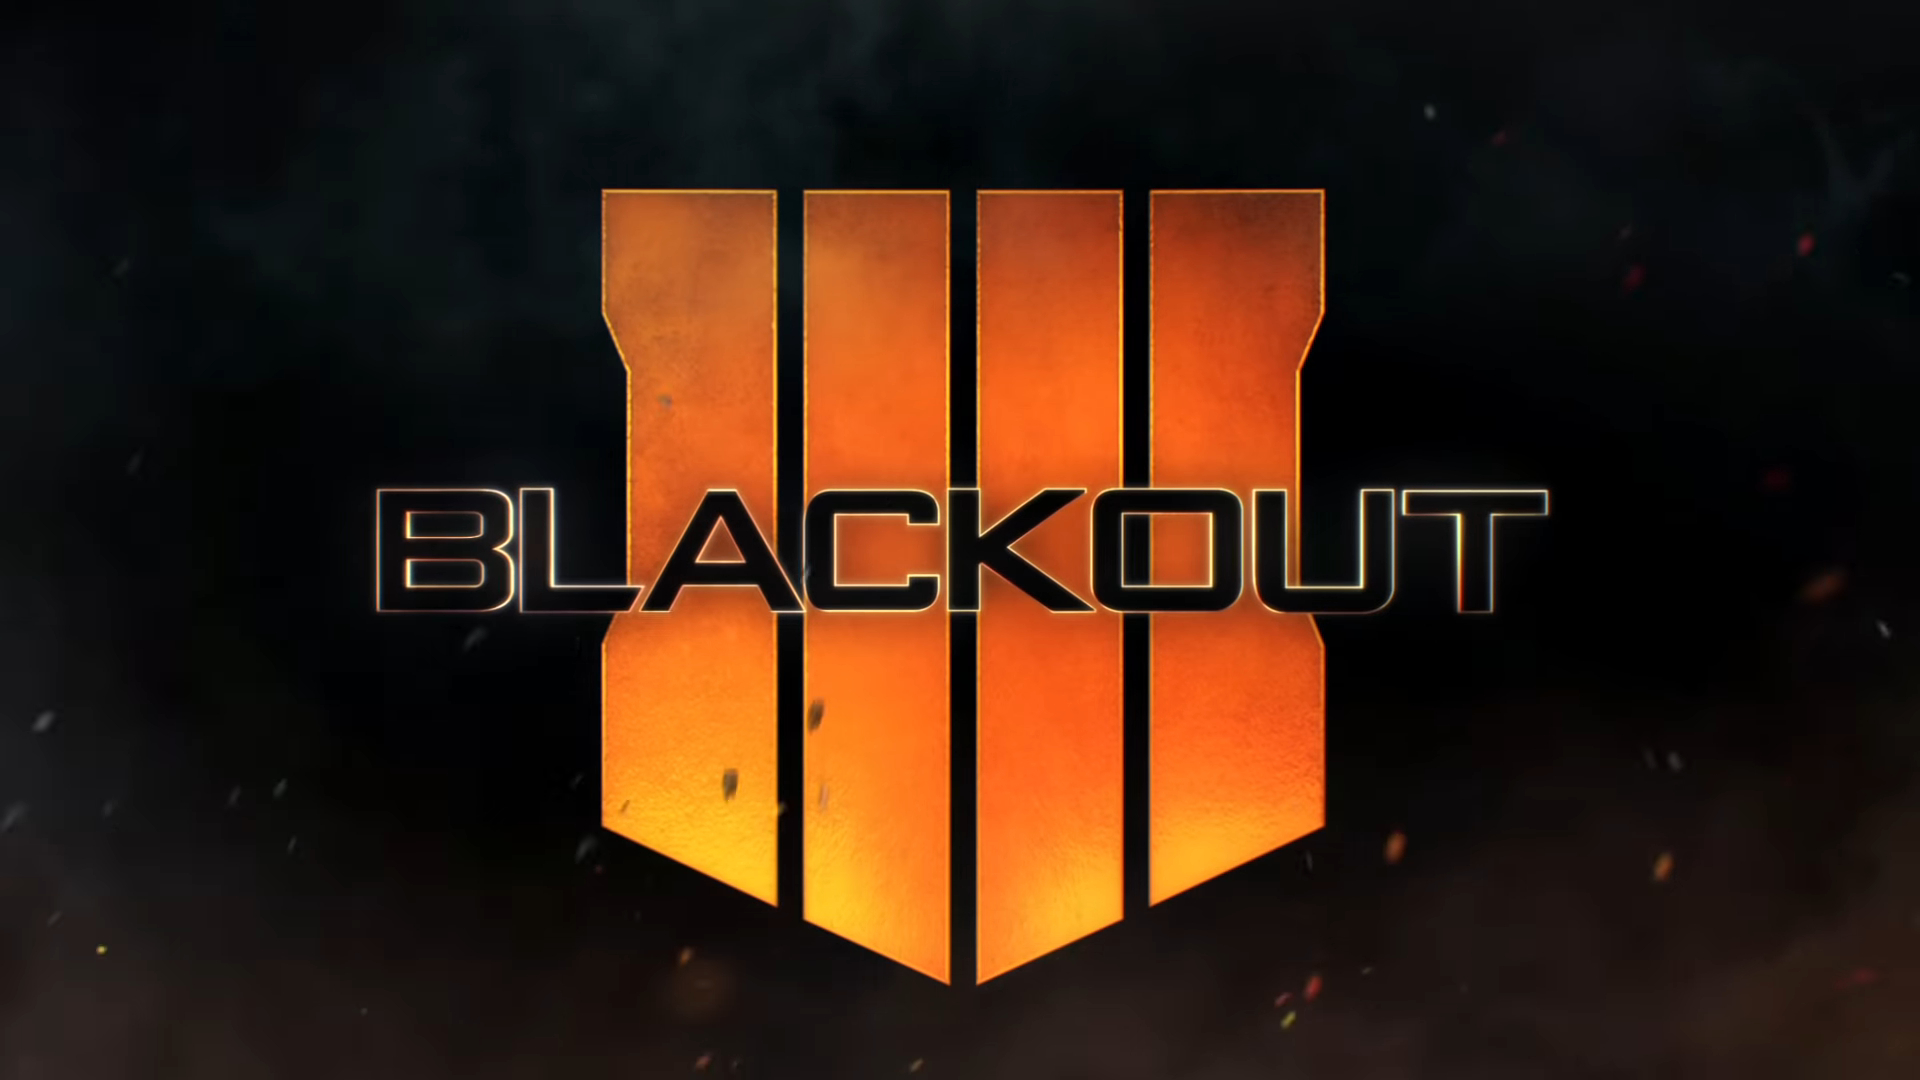 Call of Duty Blackout E3 2018 PlayStation